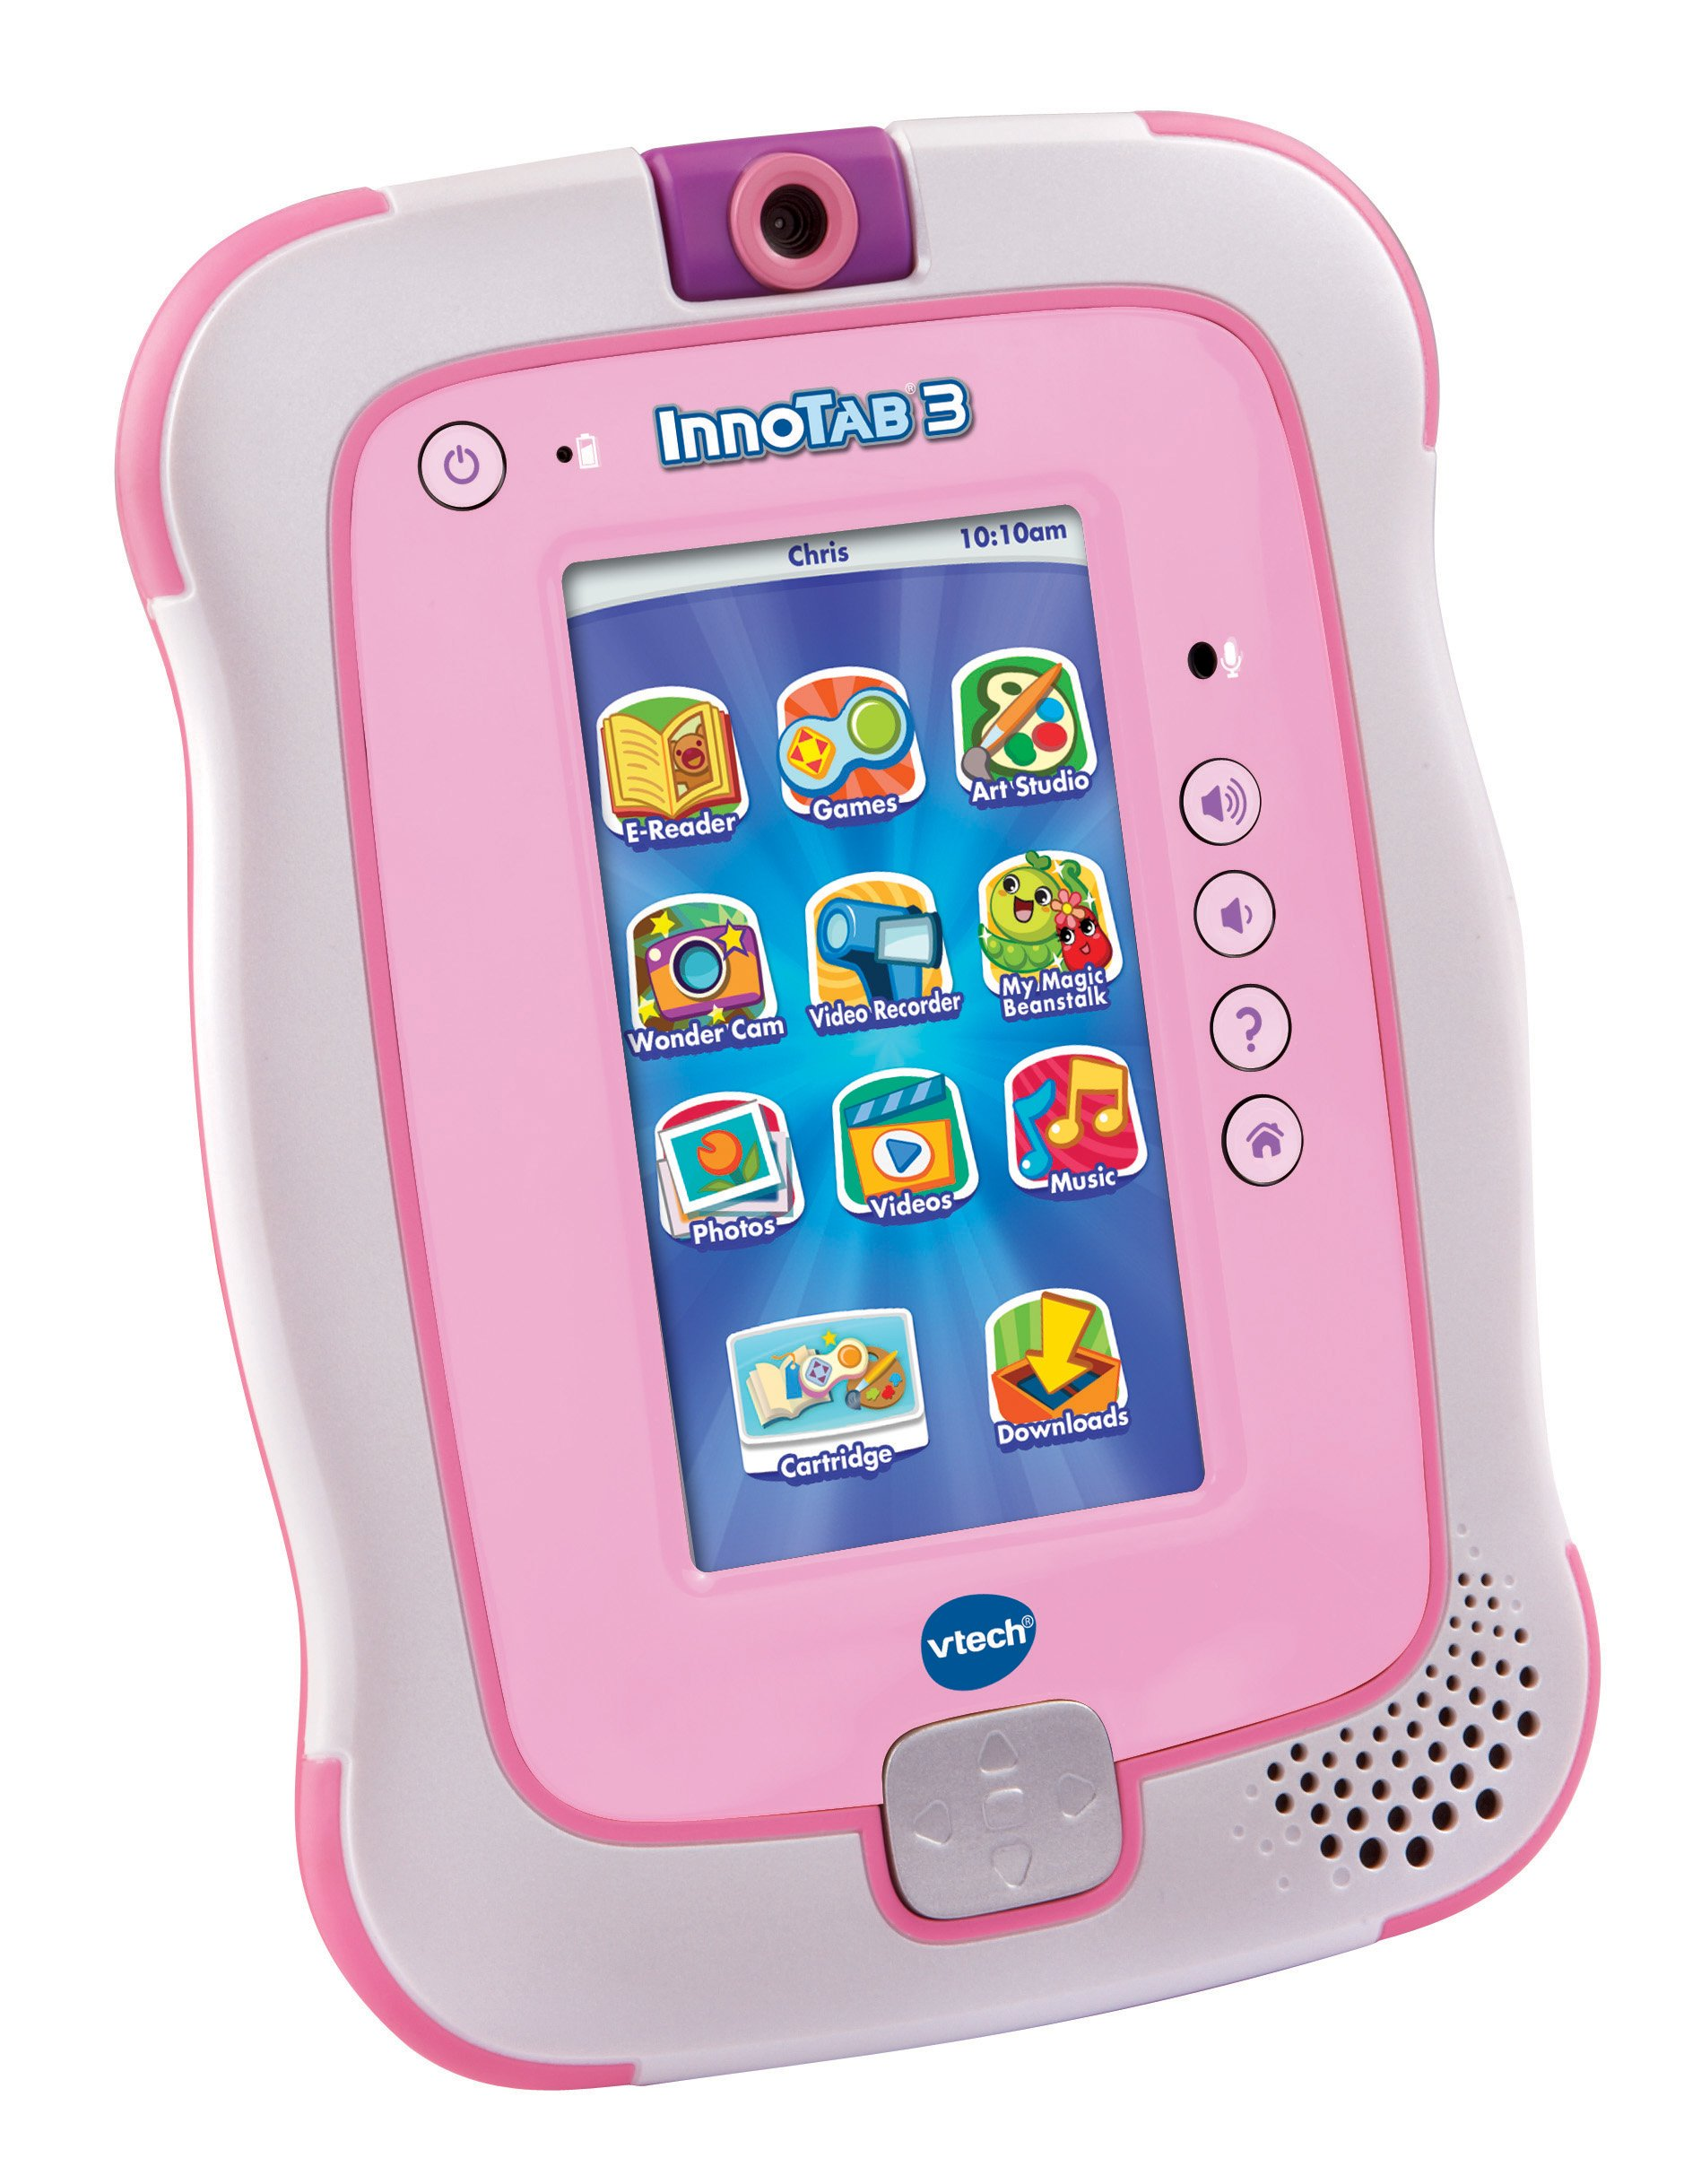 VTech InnoTab 3 The Learning App Tablet, Pink by VTech (Image #2)